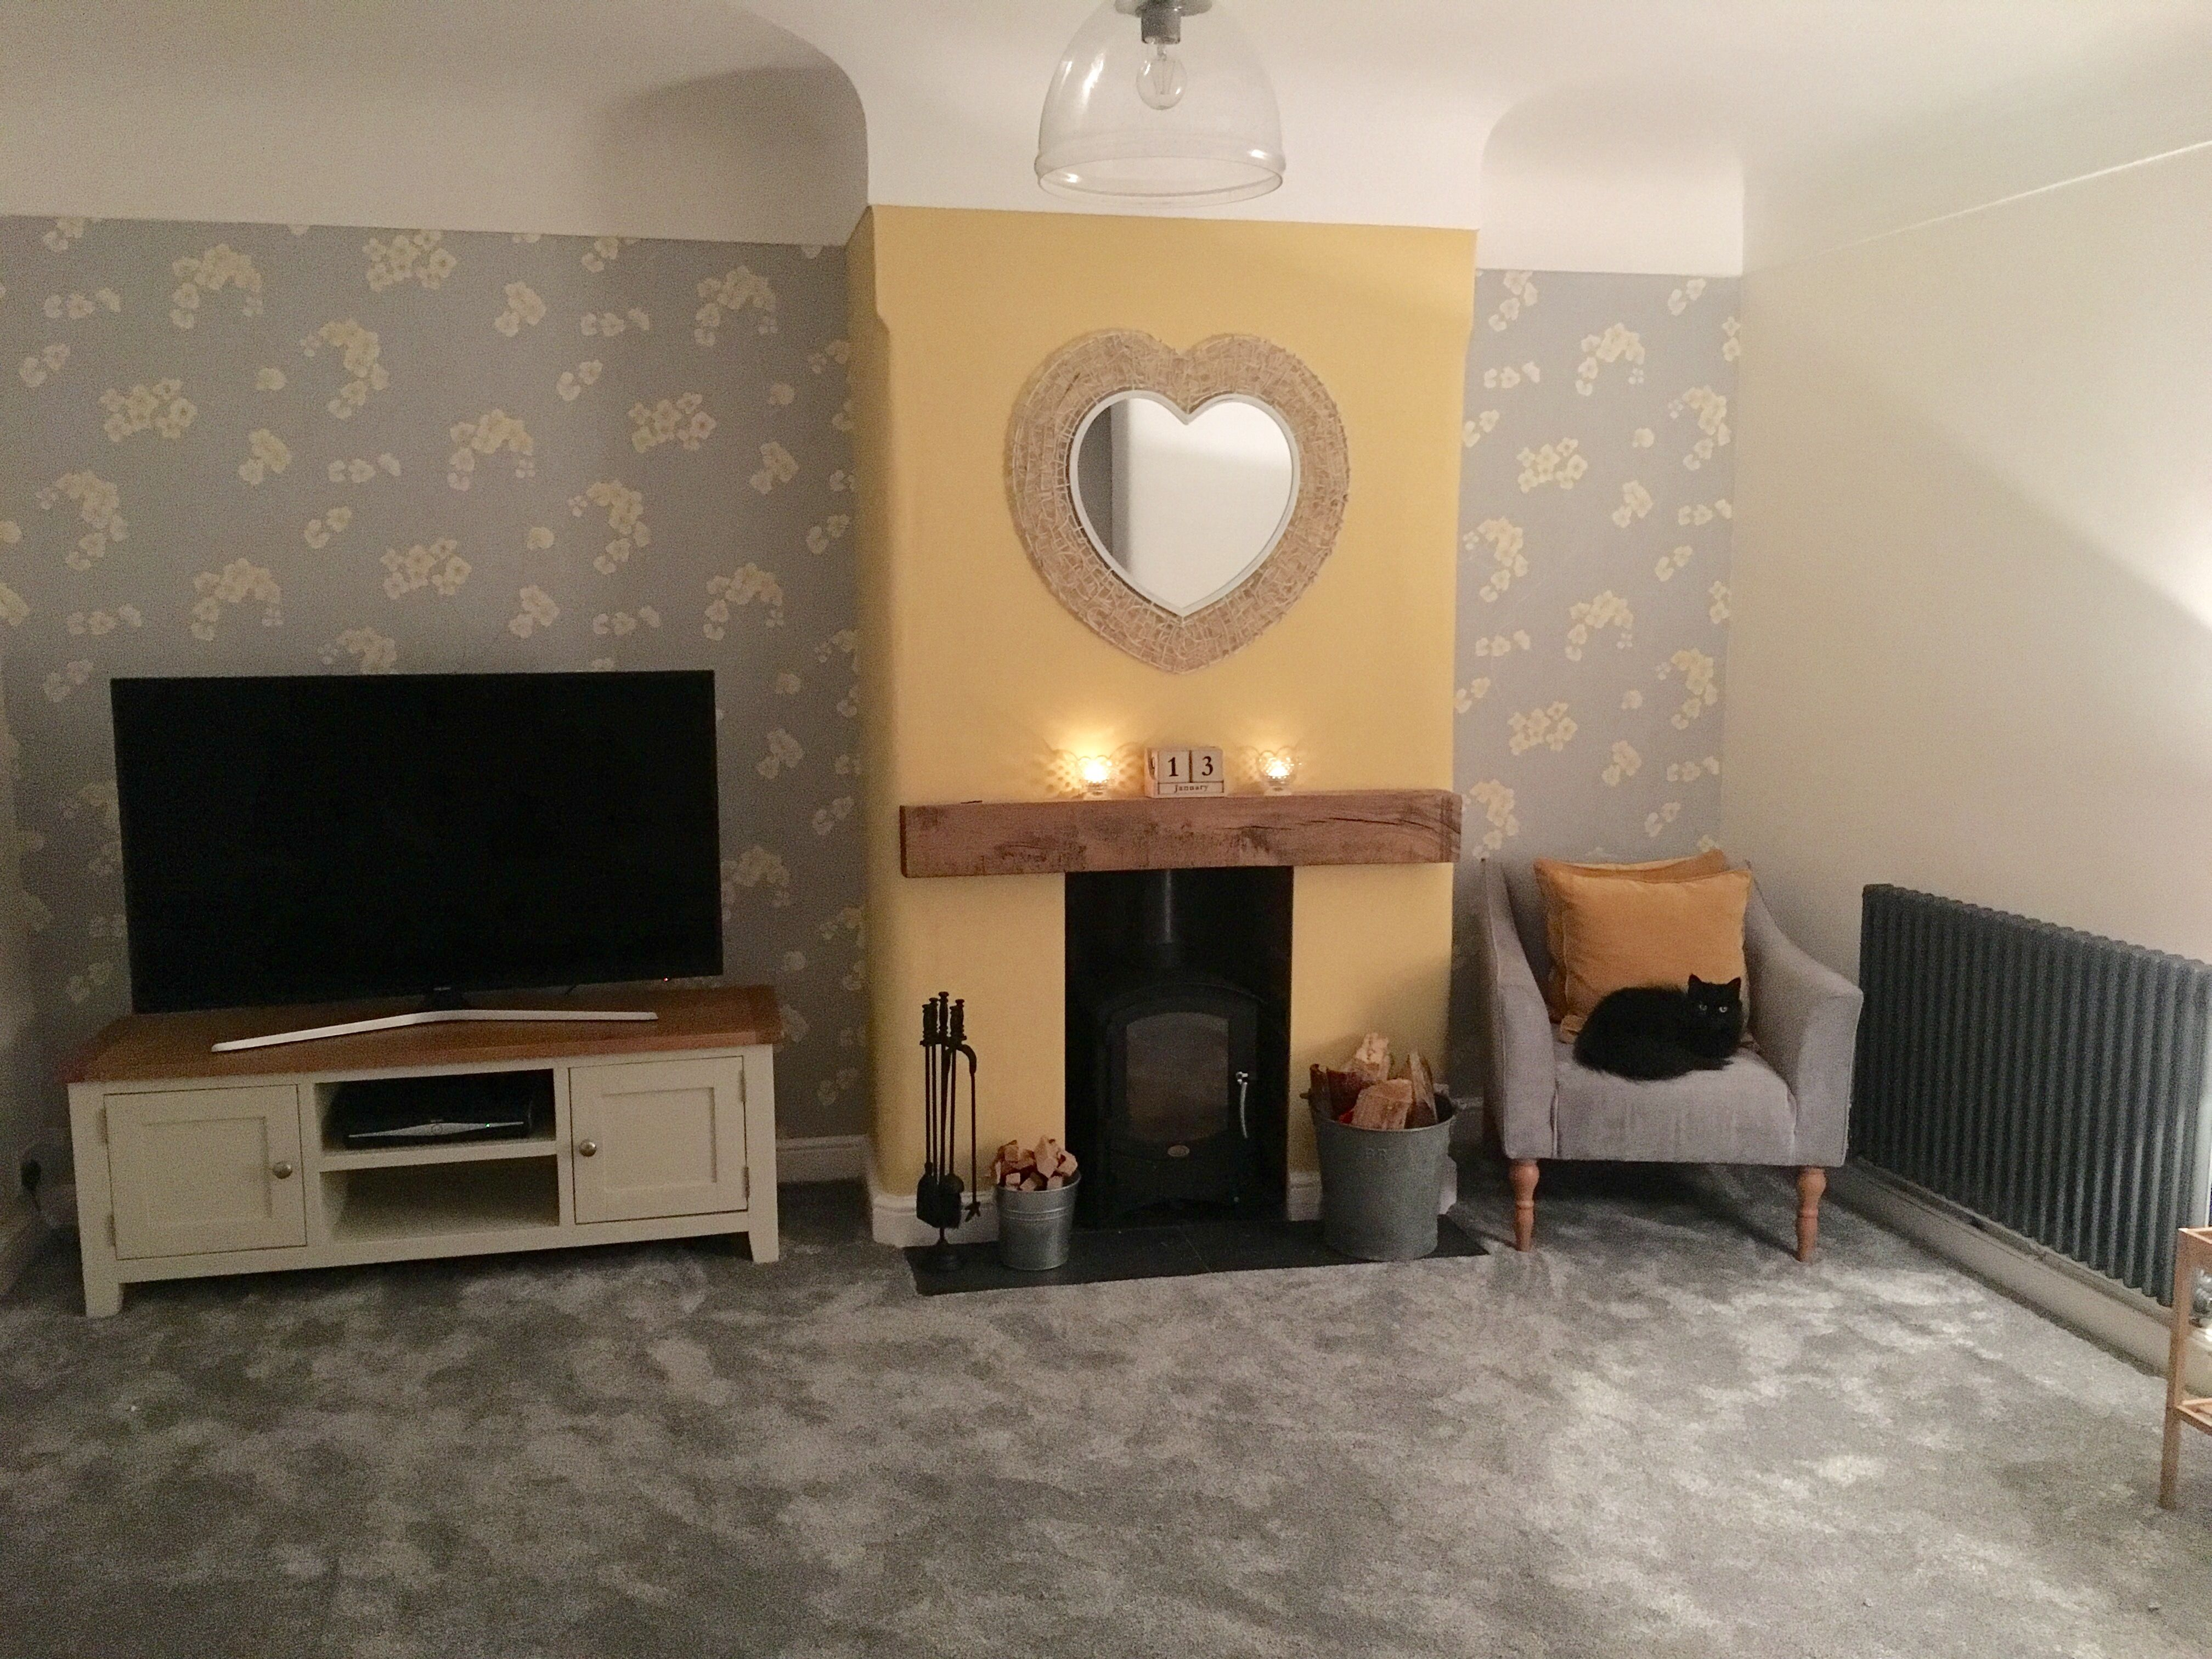 New Living Room Graham Brown Grey Soft Ochre Wallpaper With Dulux Butter Biscuit Paint New Living Room Home Decor Room